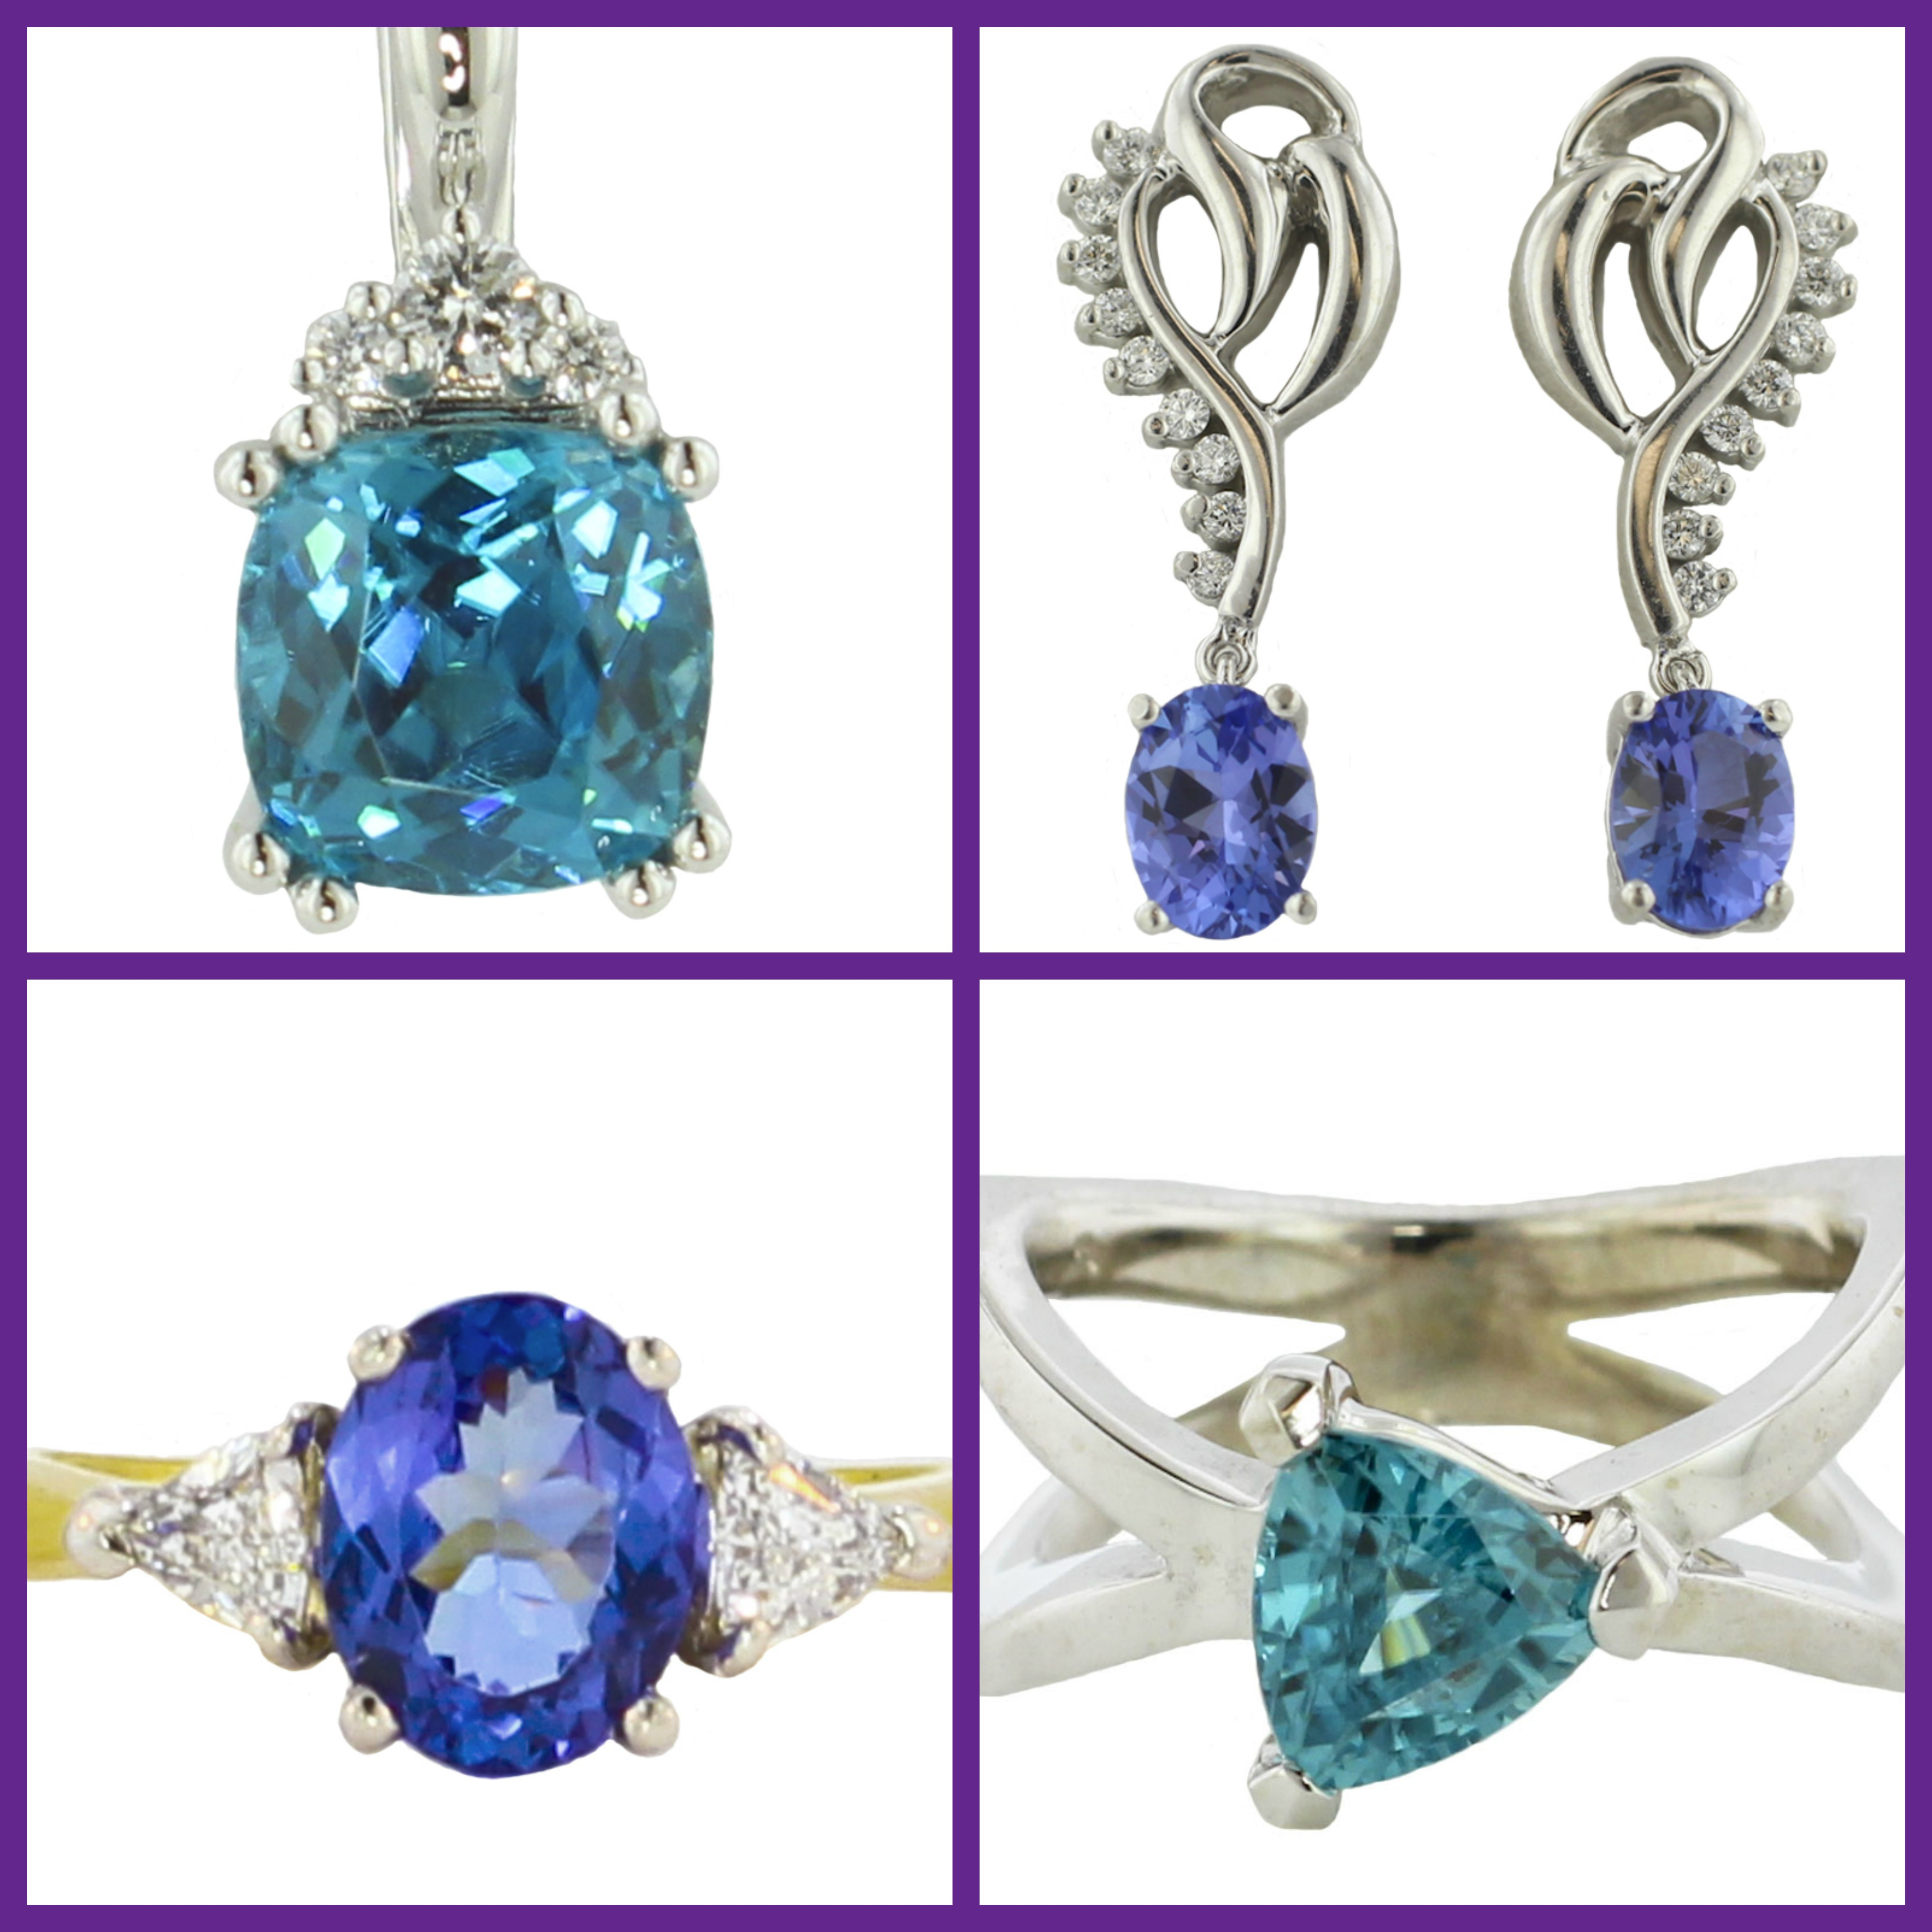 Birthstone of the Month: Blue Zircon and Tanzanite